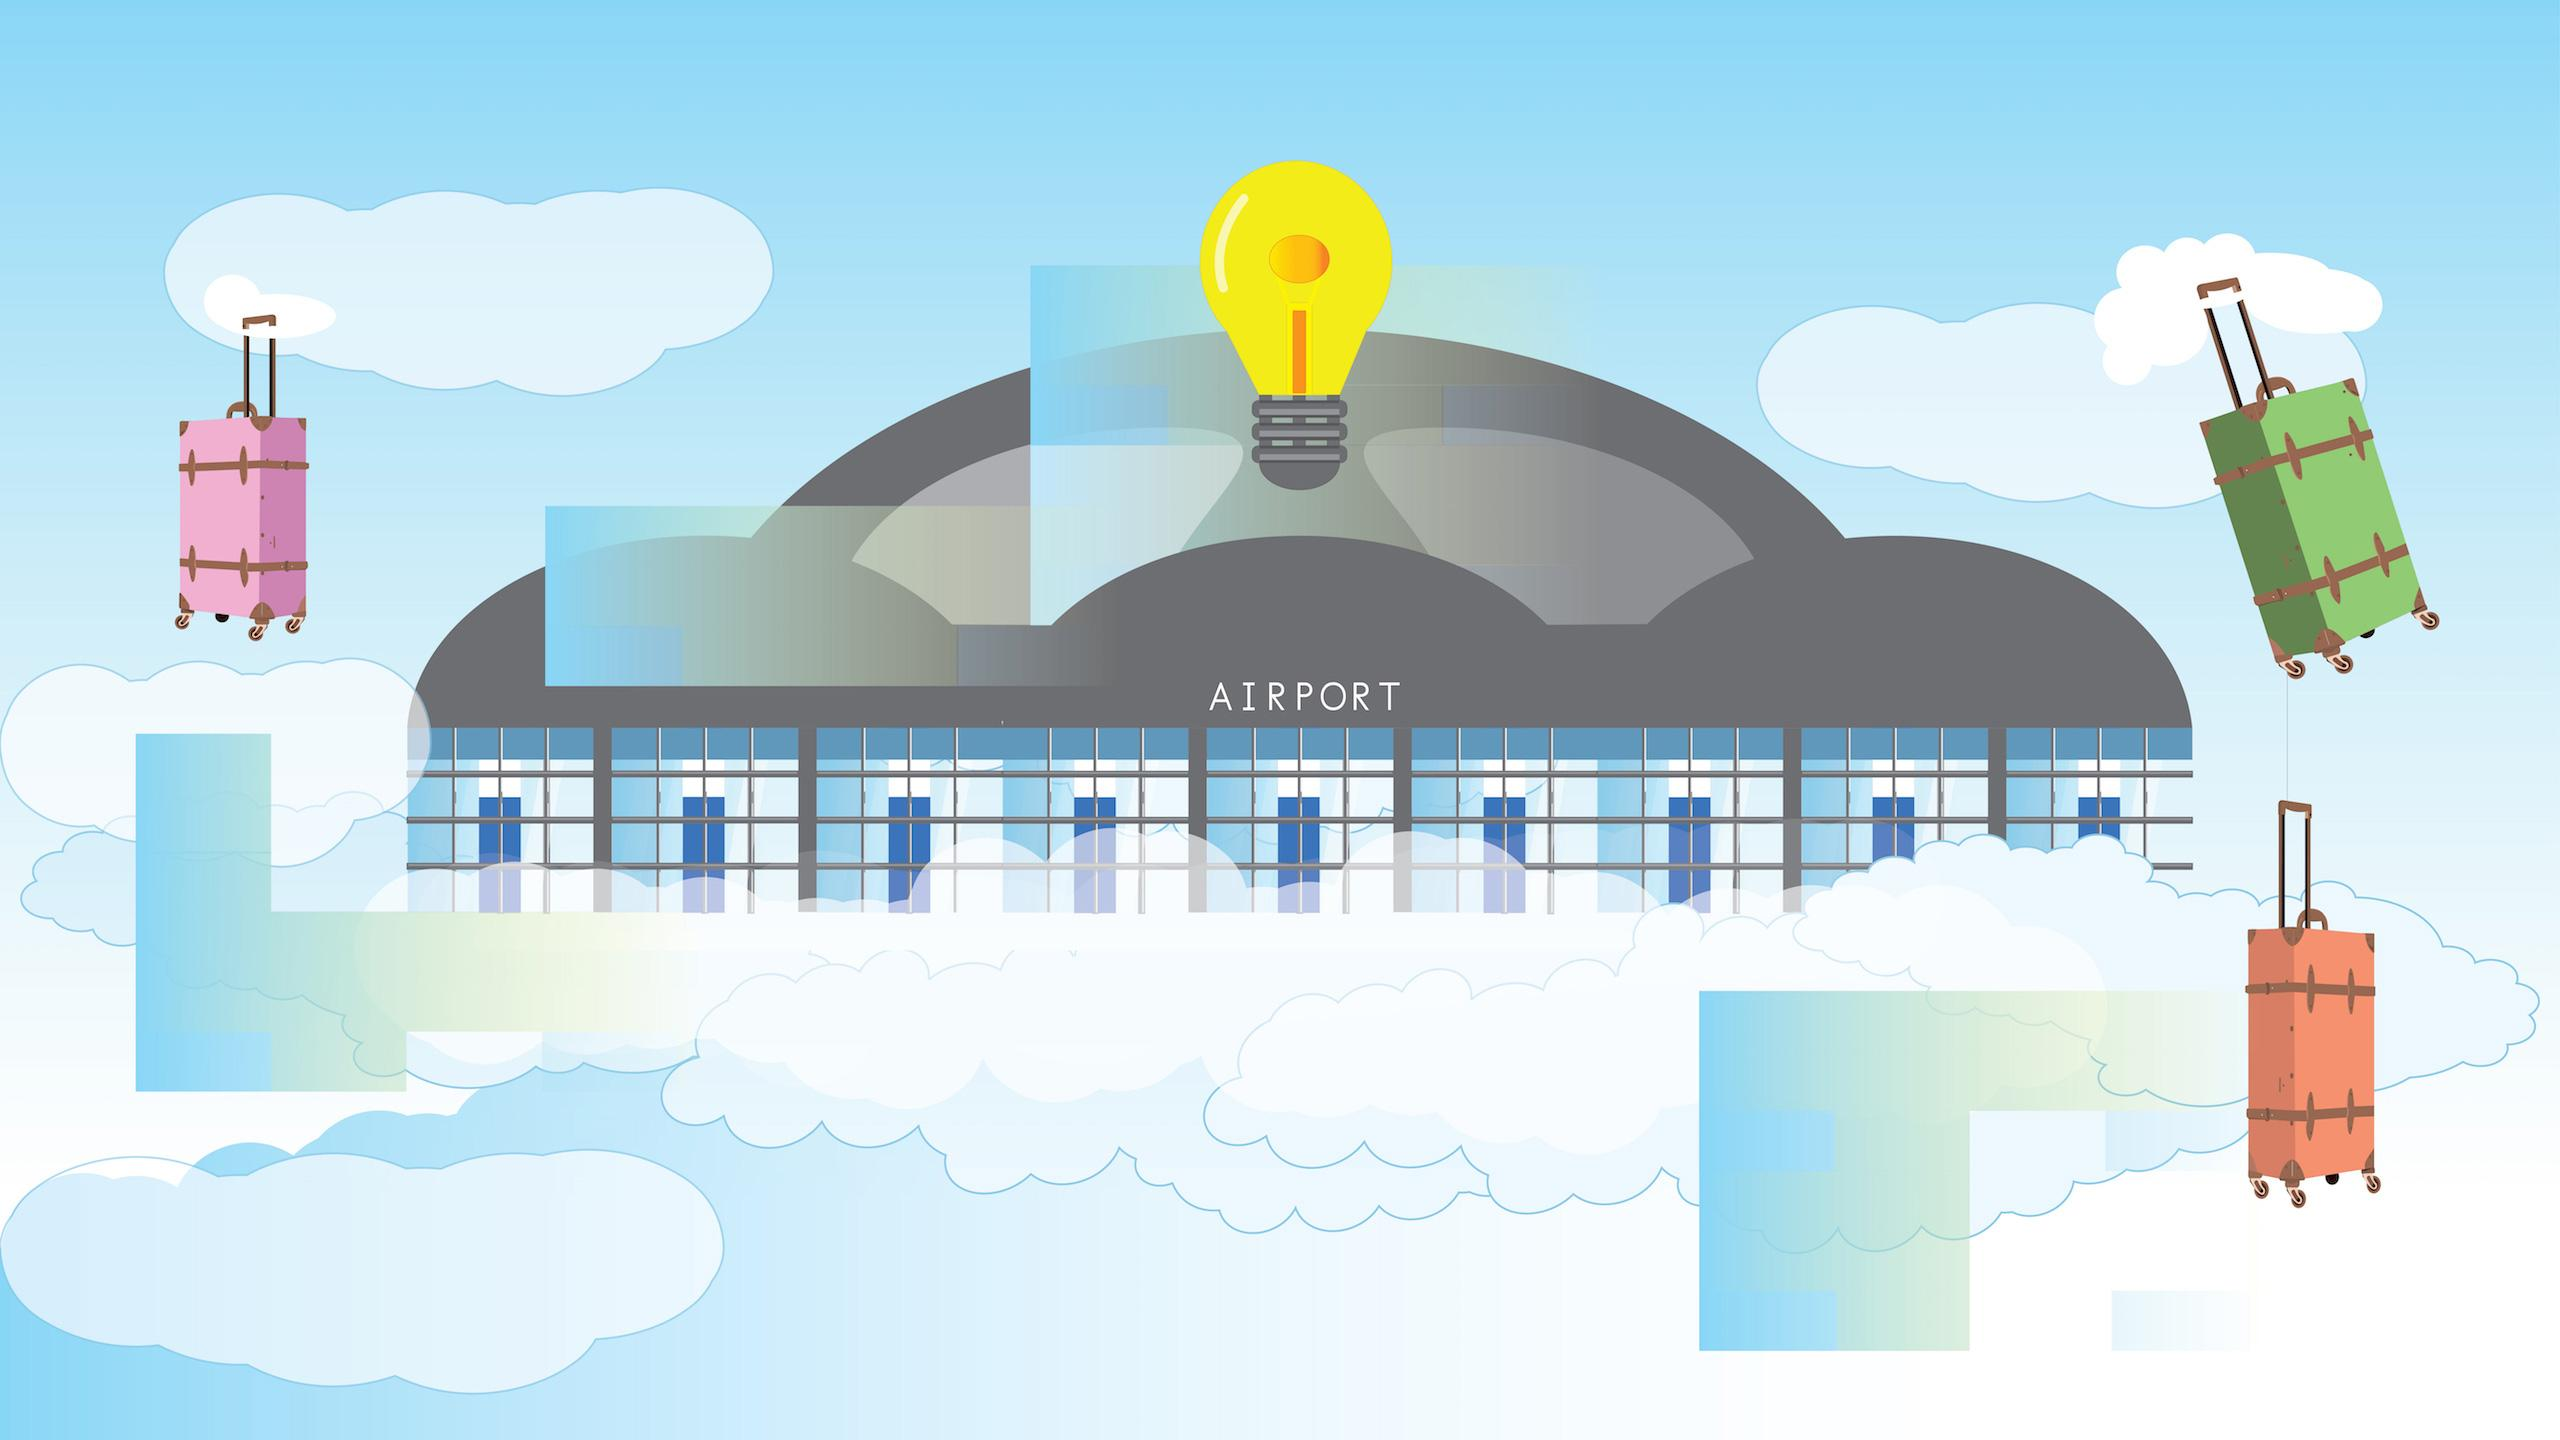 Illustration of an airport floating on a cloud with an idea lightbulb and floating baggage around it.